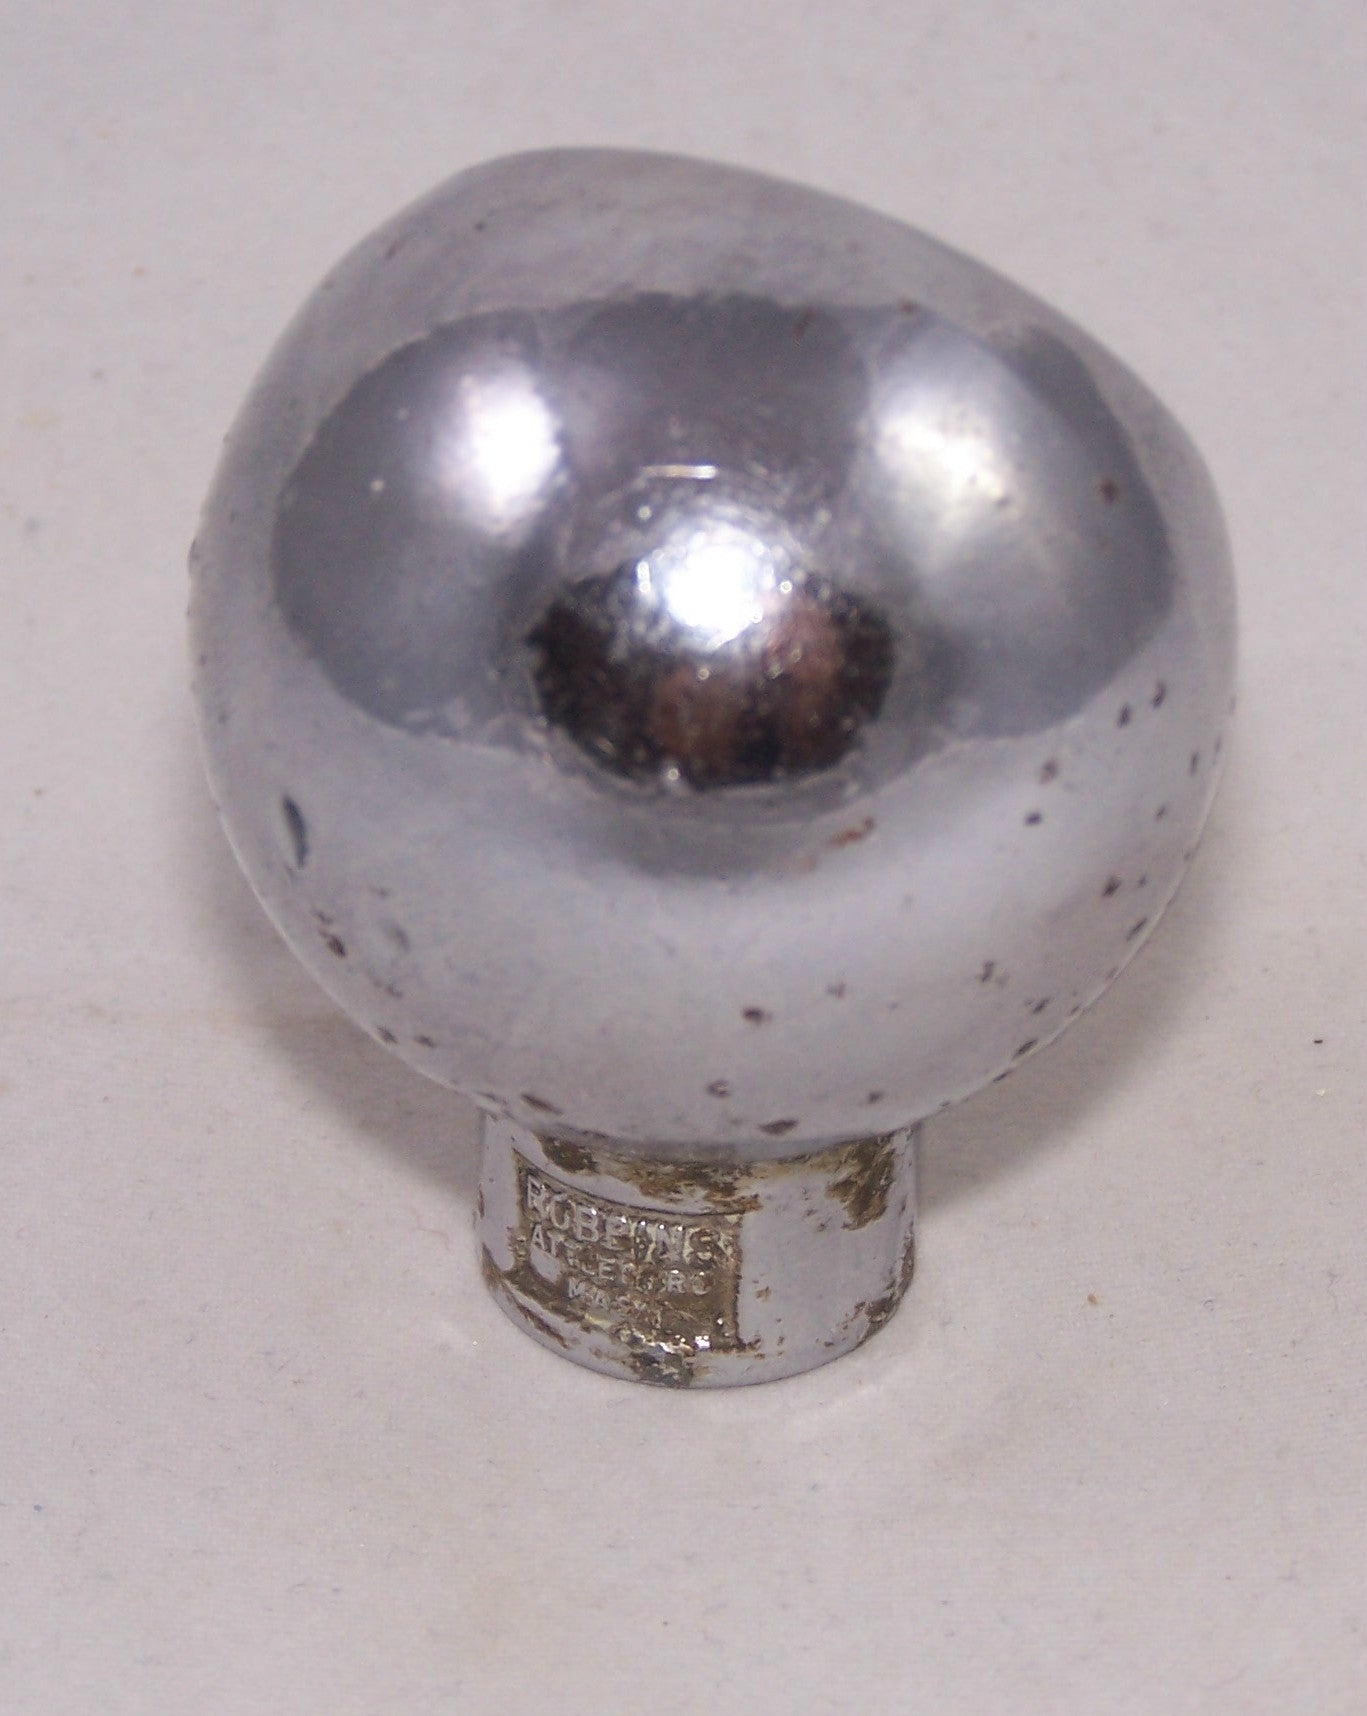 Good Old Hoosier Ball Knob, Page 50-331, grade 8+